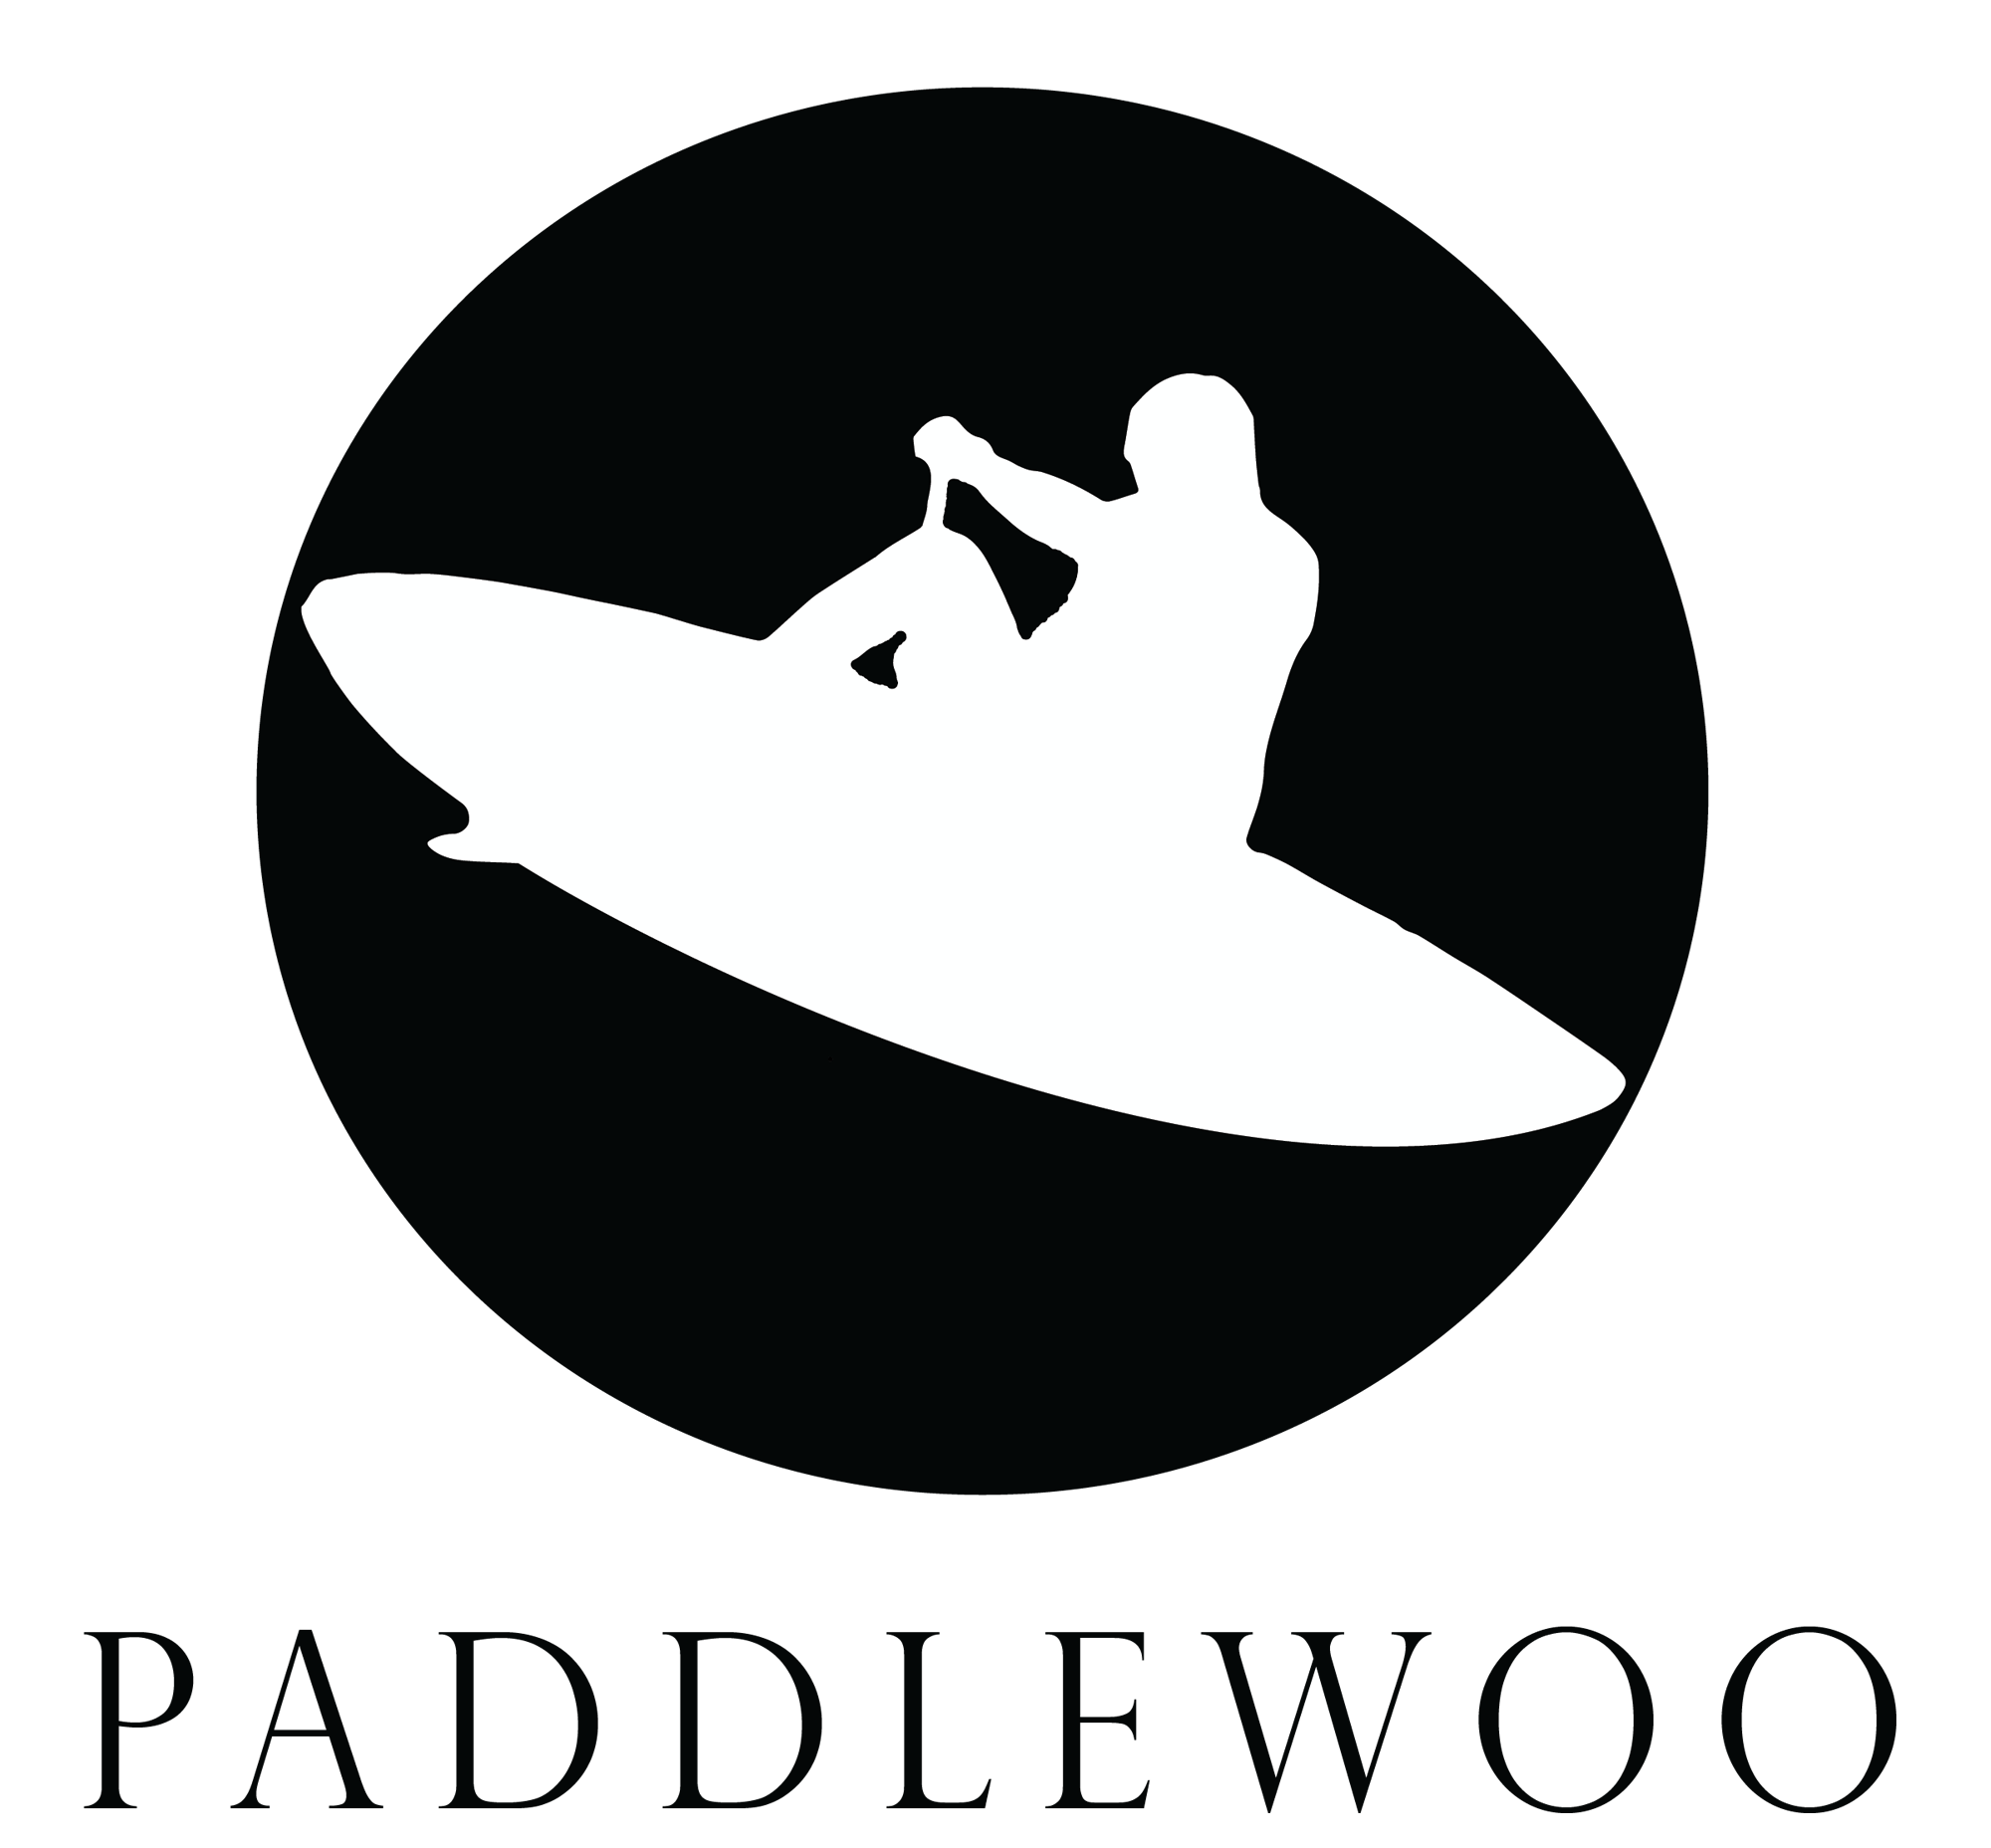 PADDLEWOO - Paddle Enhanced Surfing